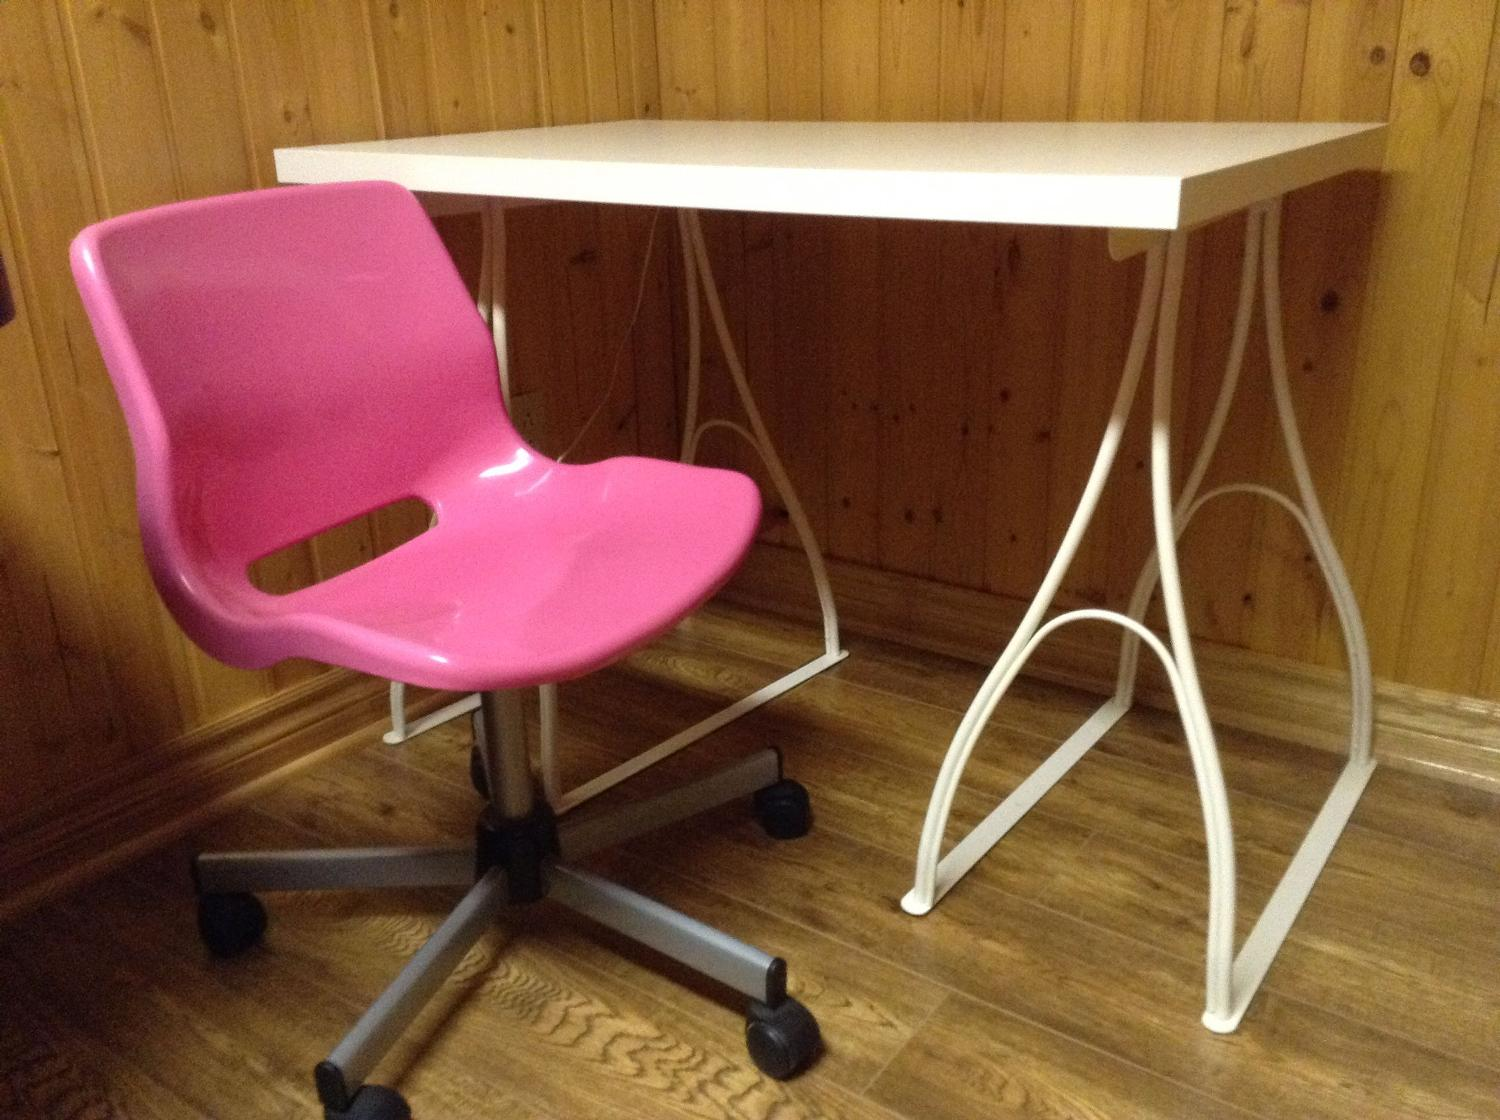 Find more table et chaise de bureau ikea for sale at up to 90% off